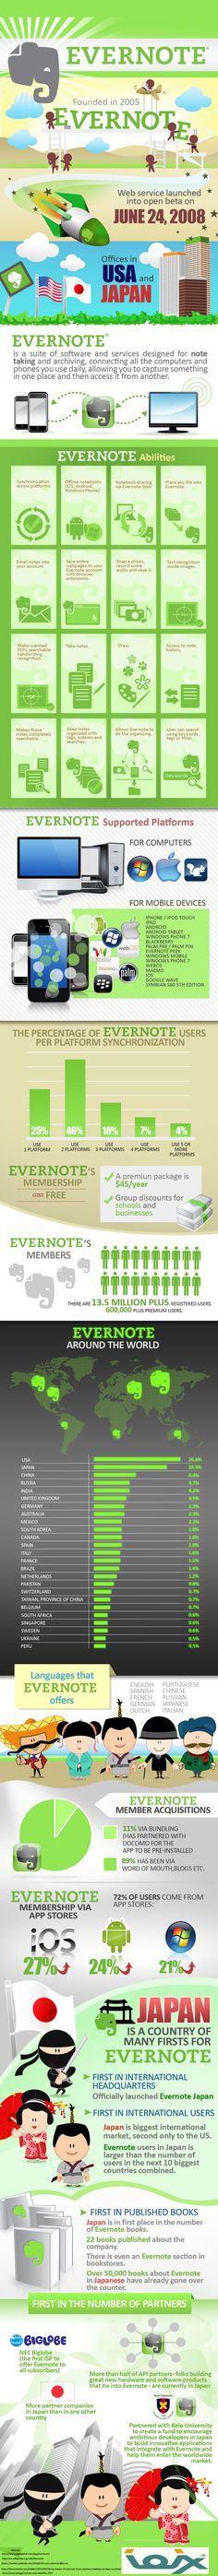 About #Evernote from http://pinterest.com/anderssporring